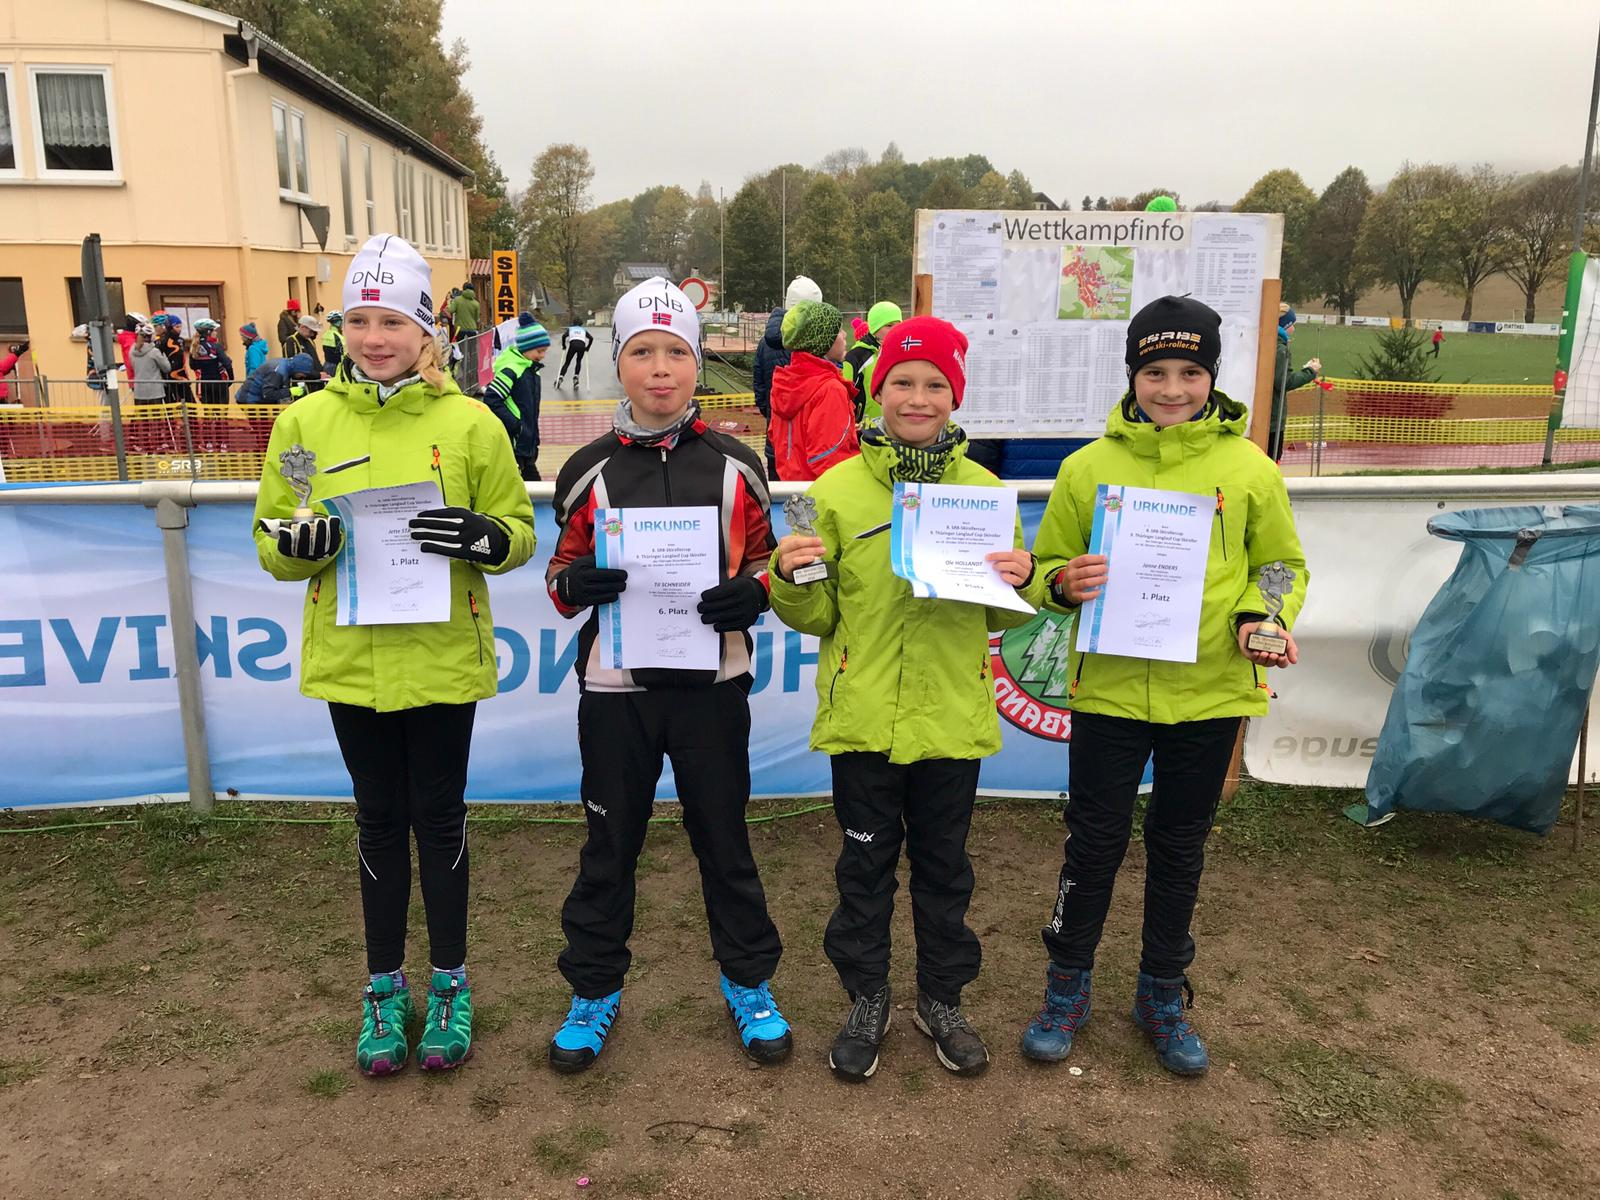 skirollercup floh siligenthal 2018 swv gaoldlauter